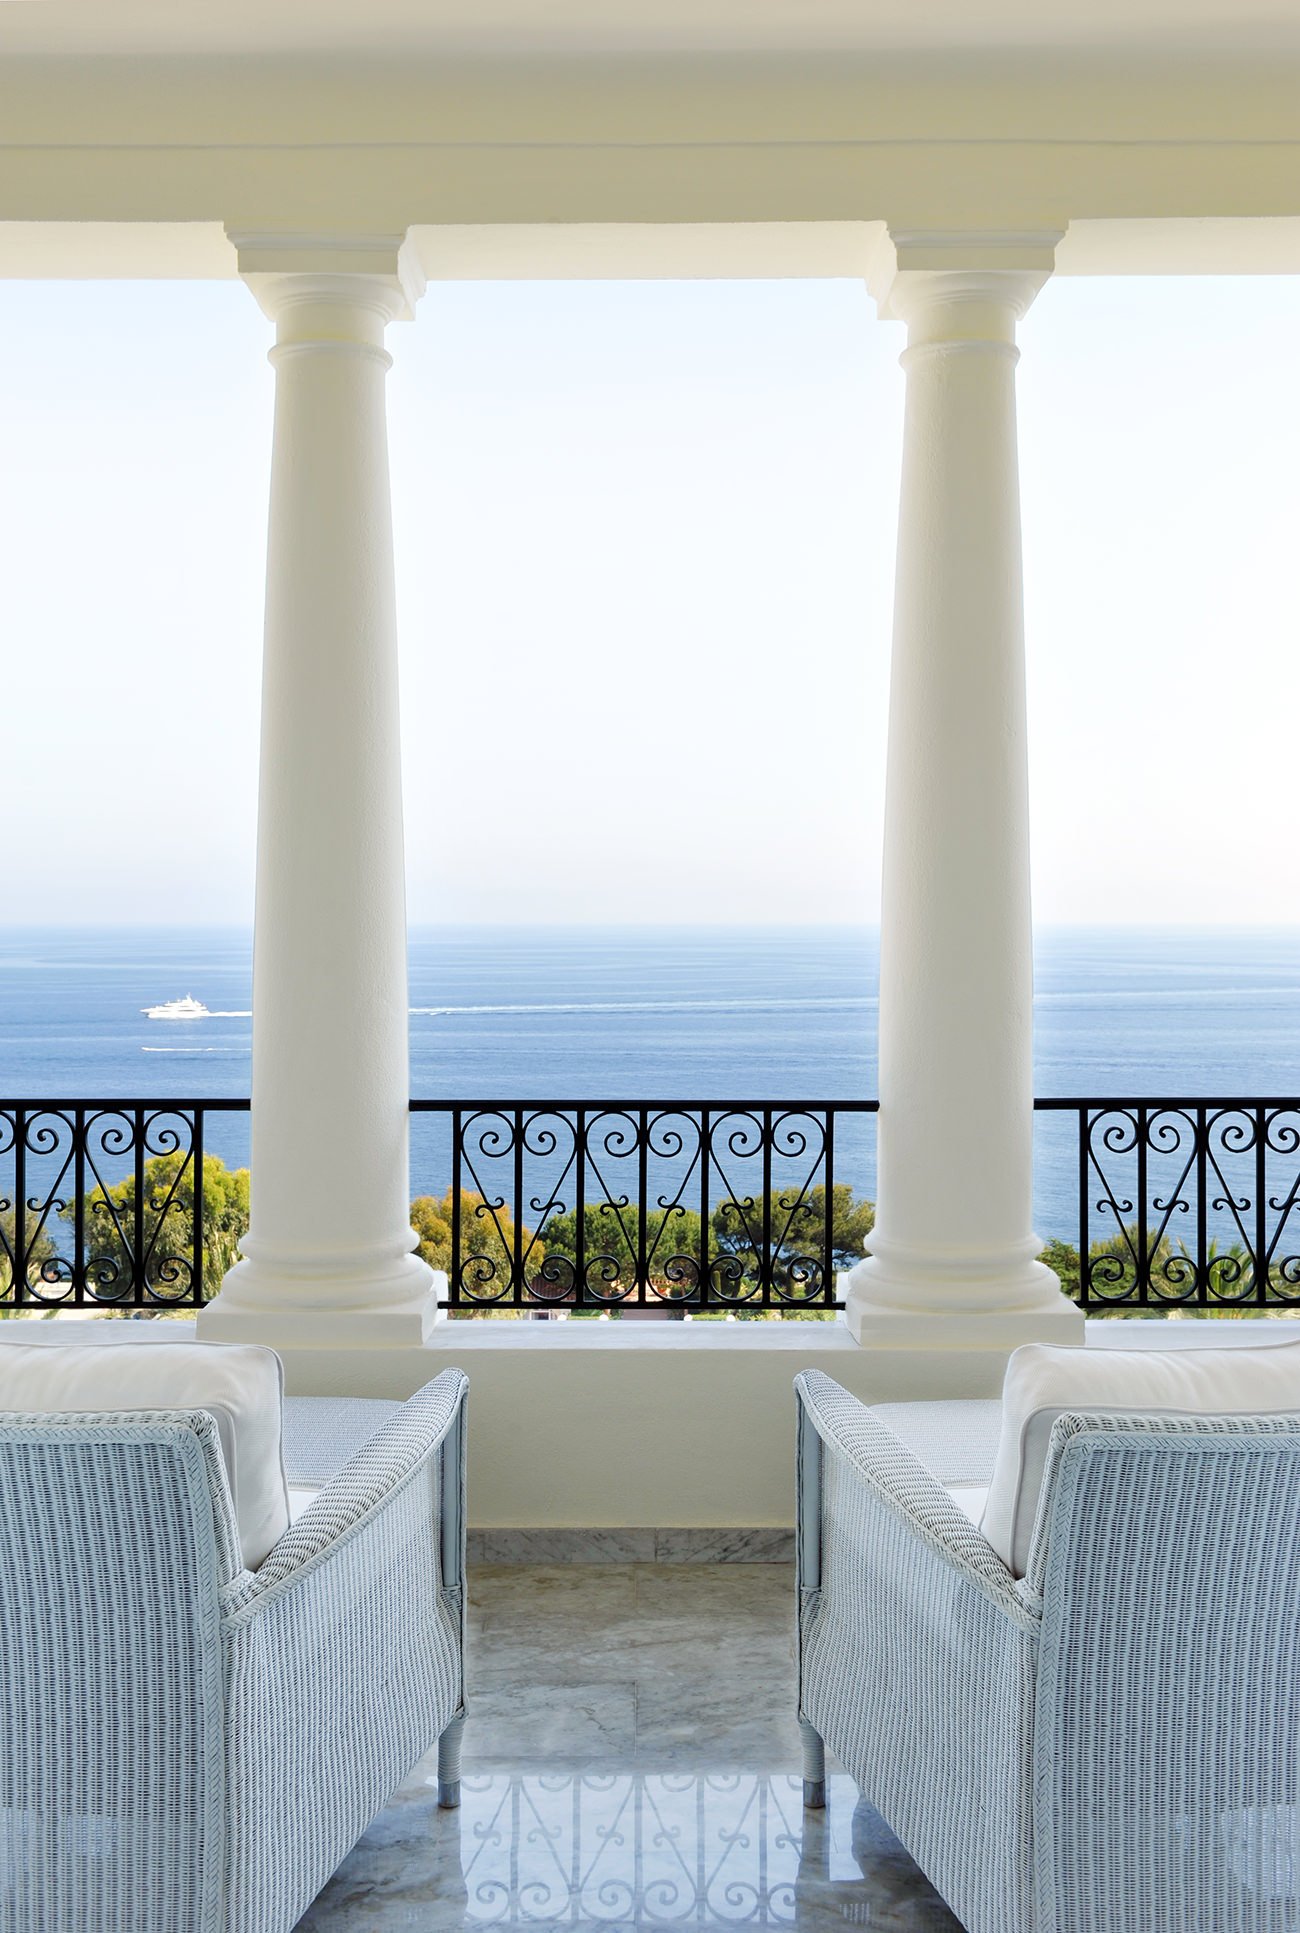 Four-Seasons-Cap-Ferrat-4